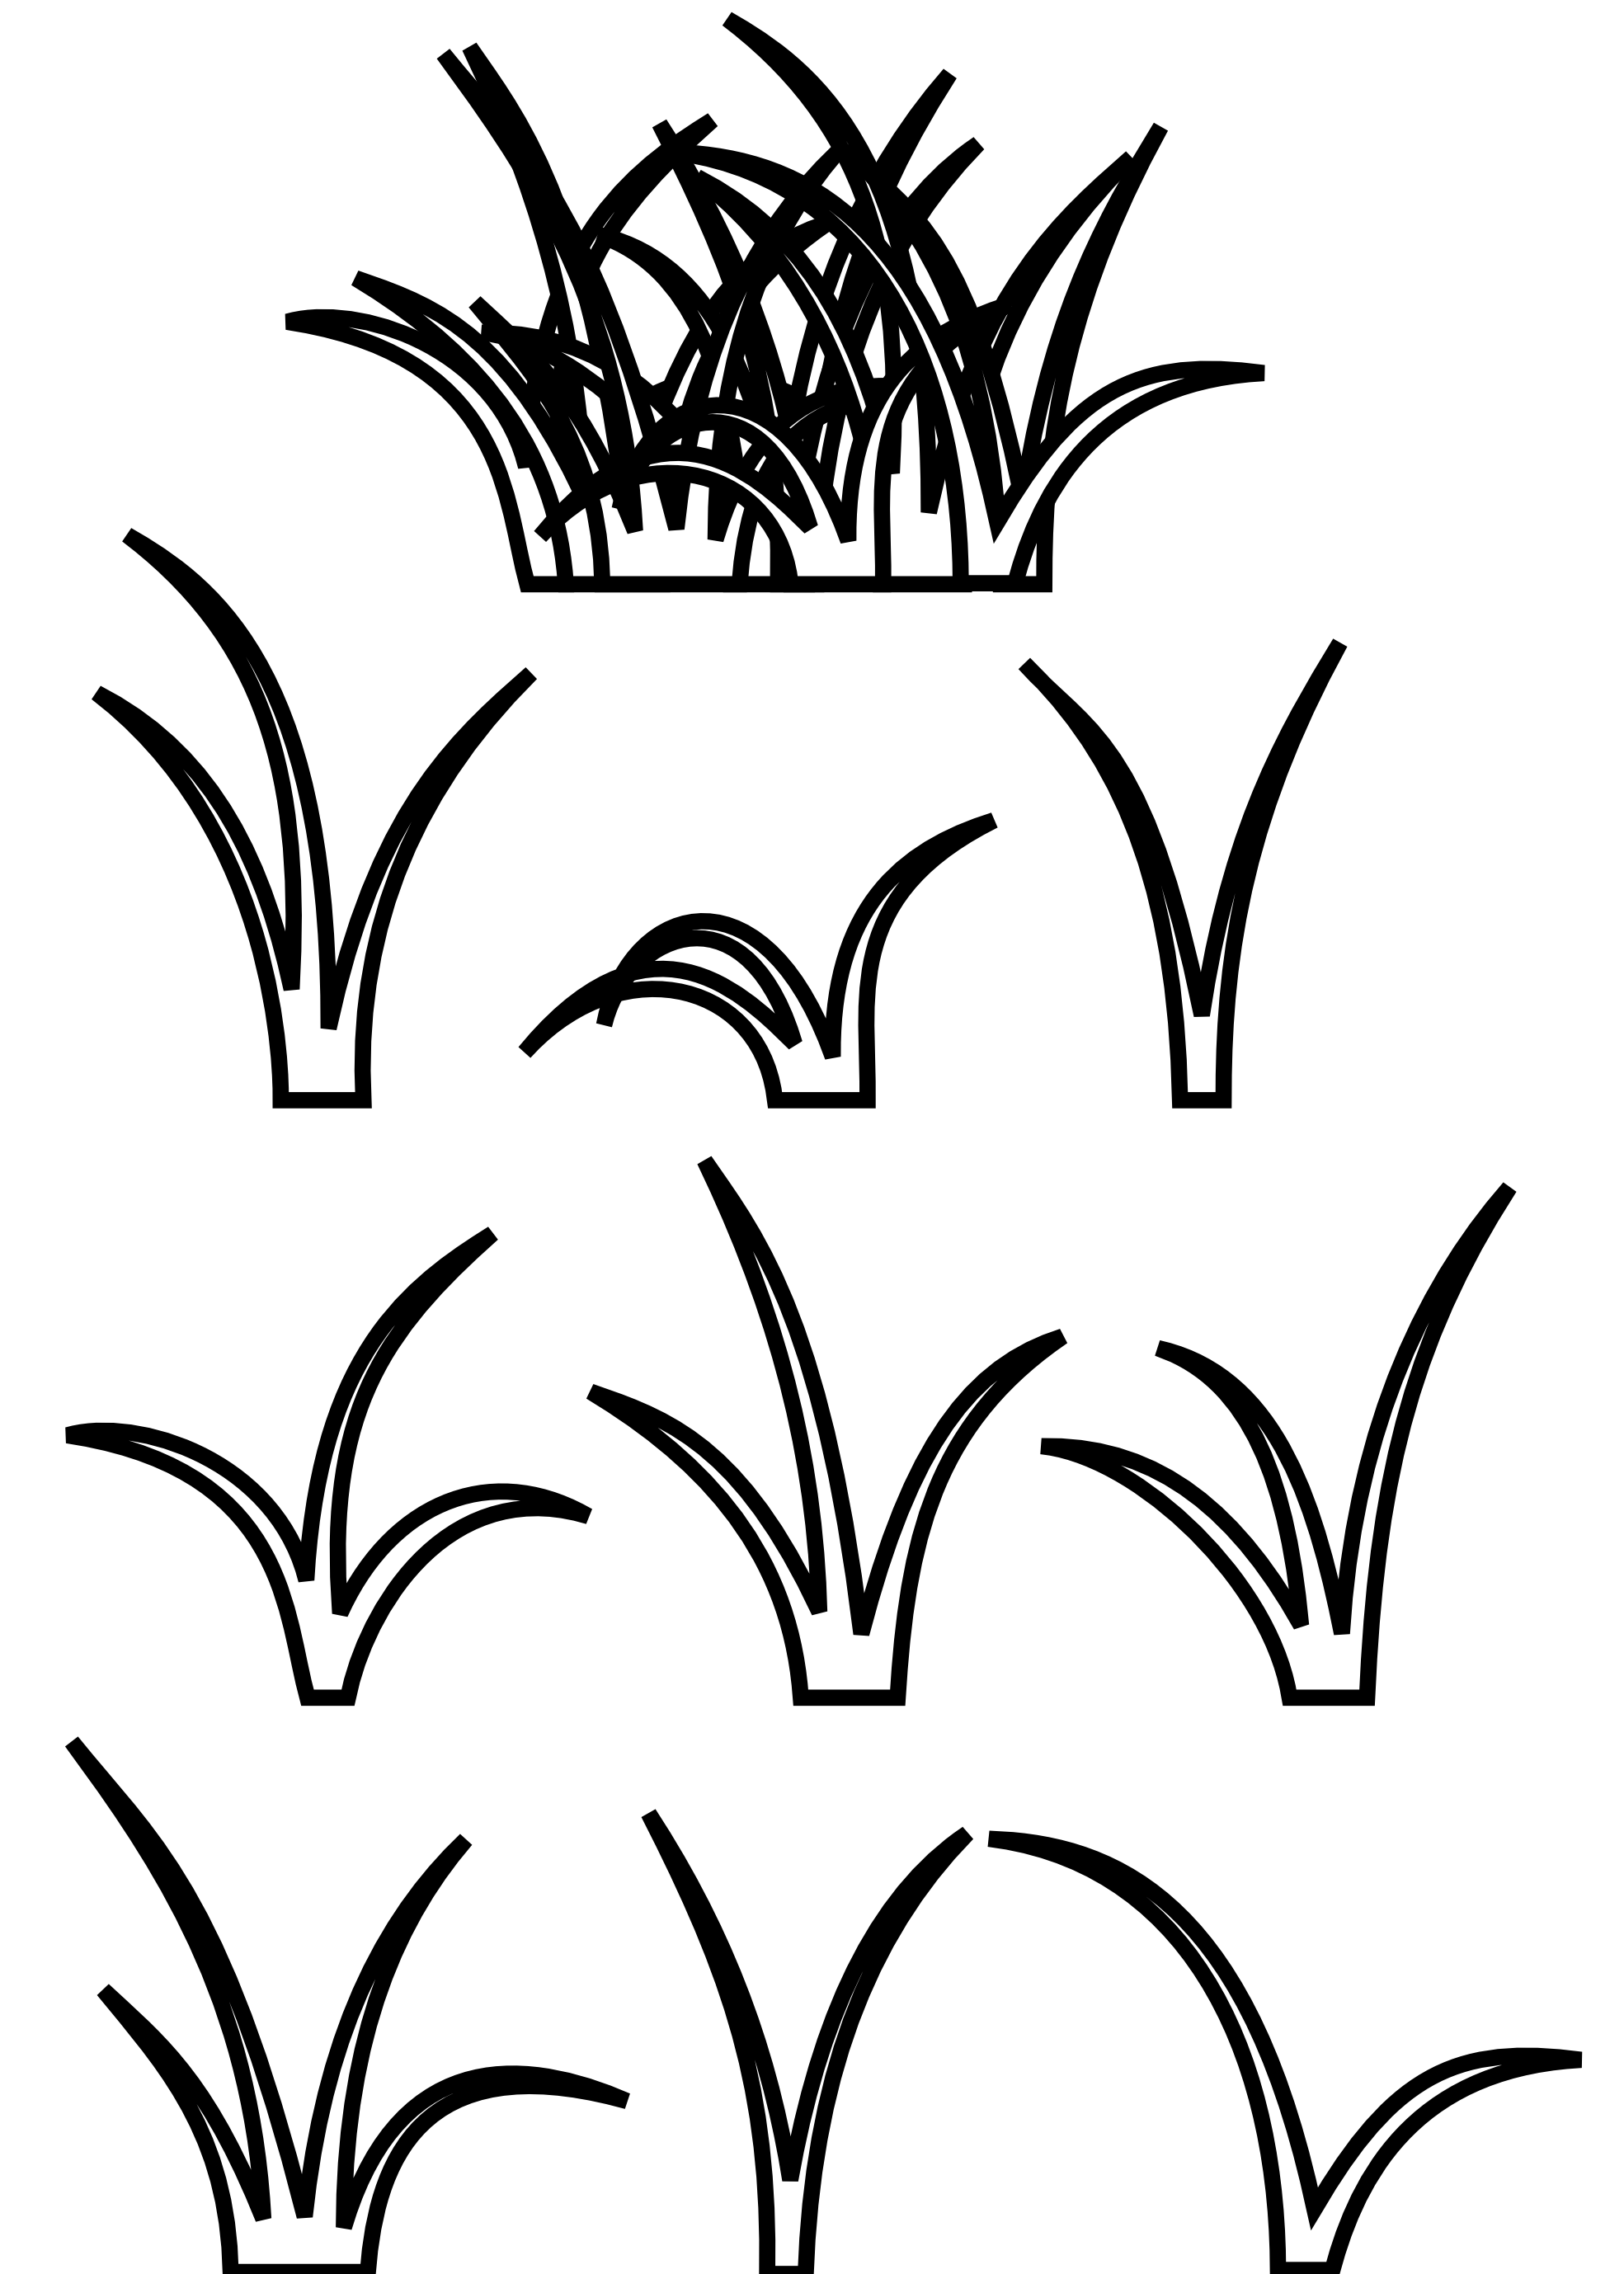 Line drawing at getdrawings. Clipart grass black and white